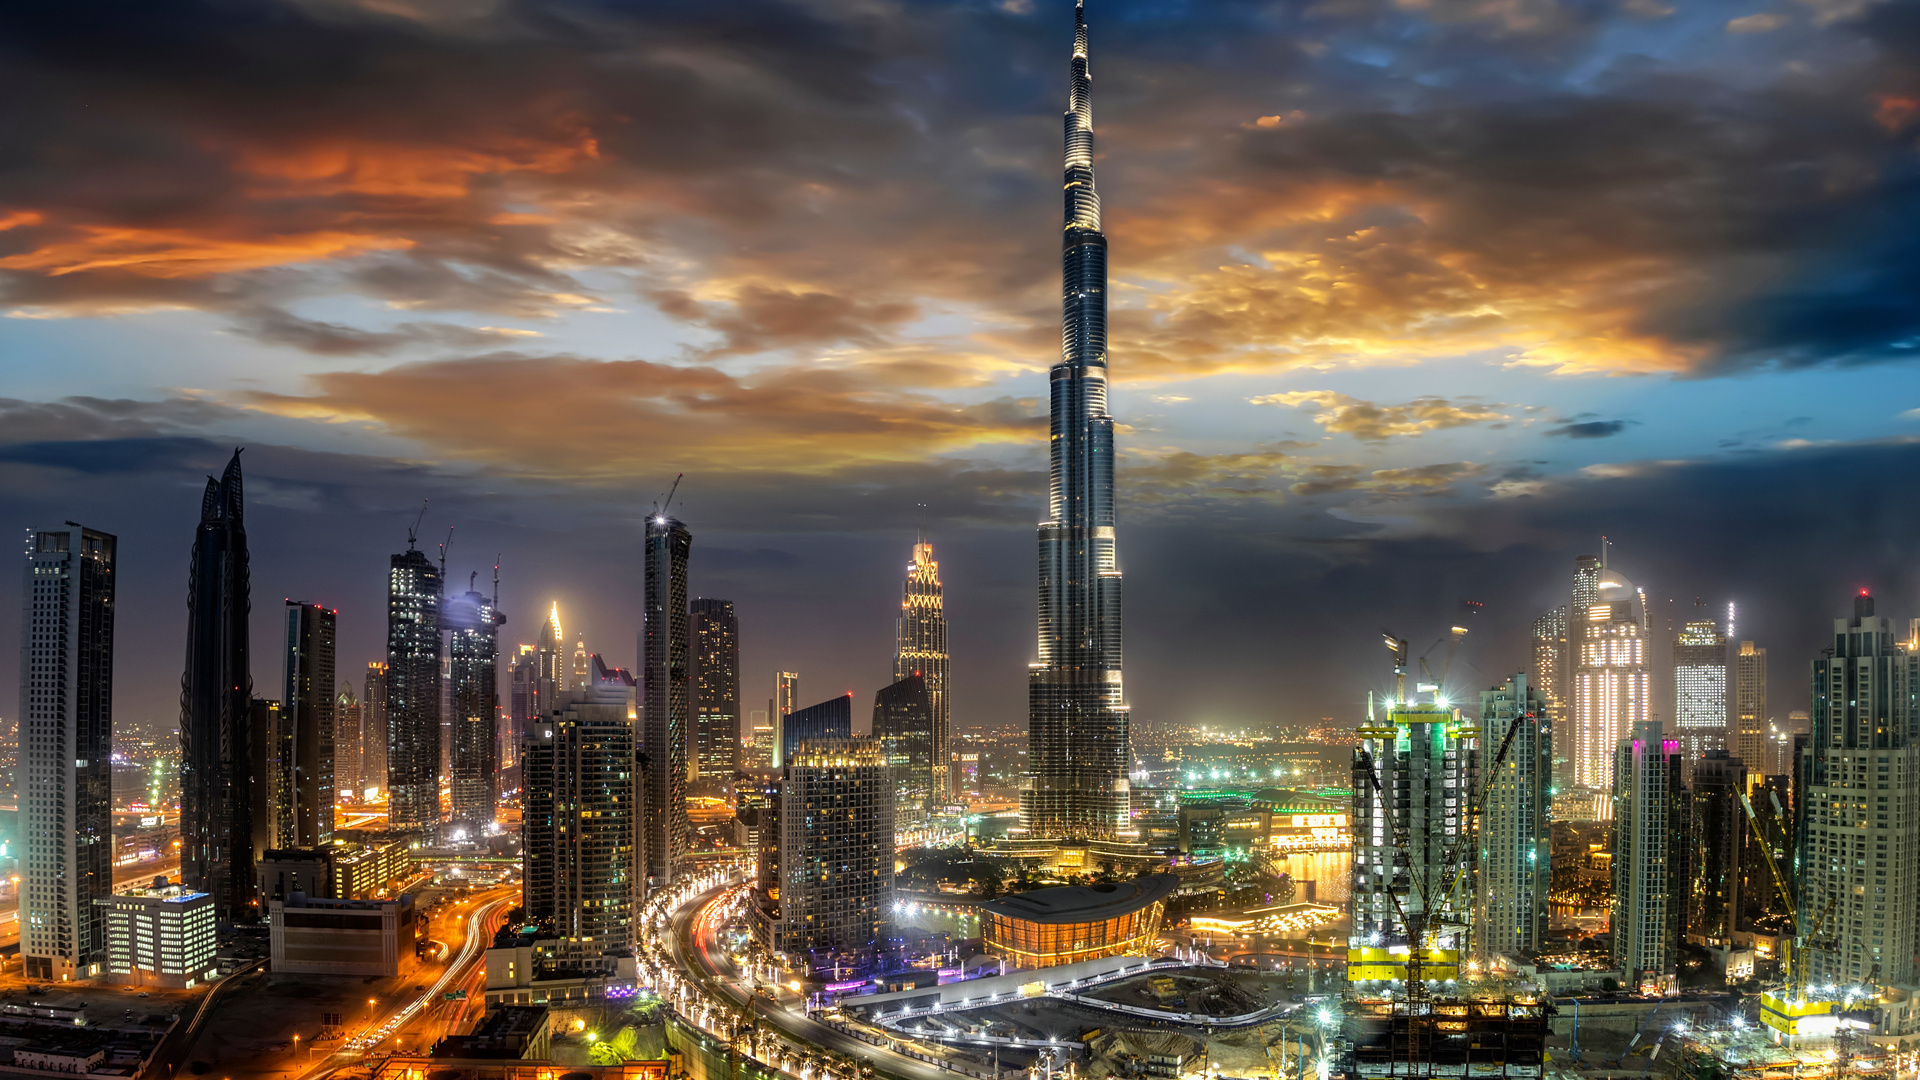 Our guide to Dubai, from restaurants and hotels to attractions like the Dubai mall.